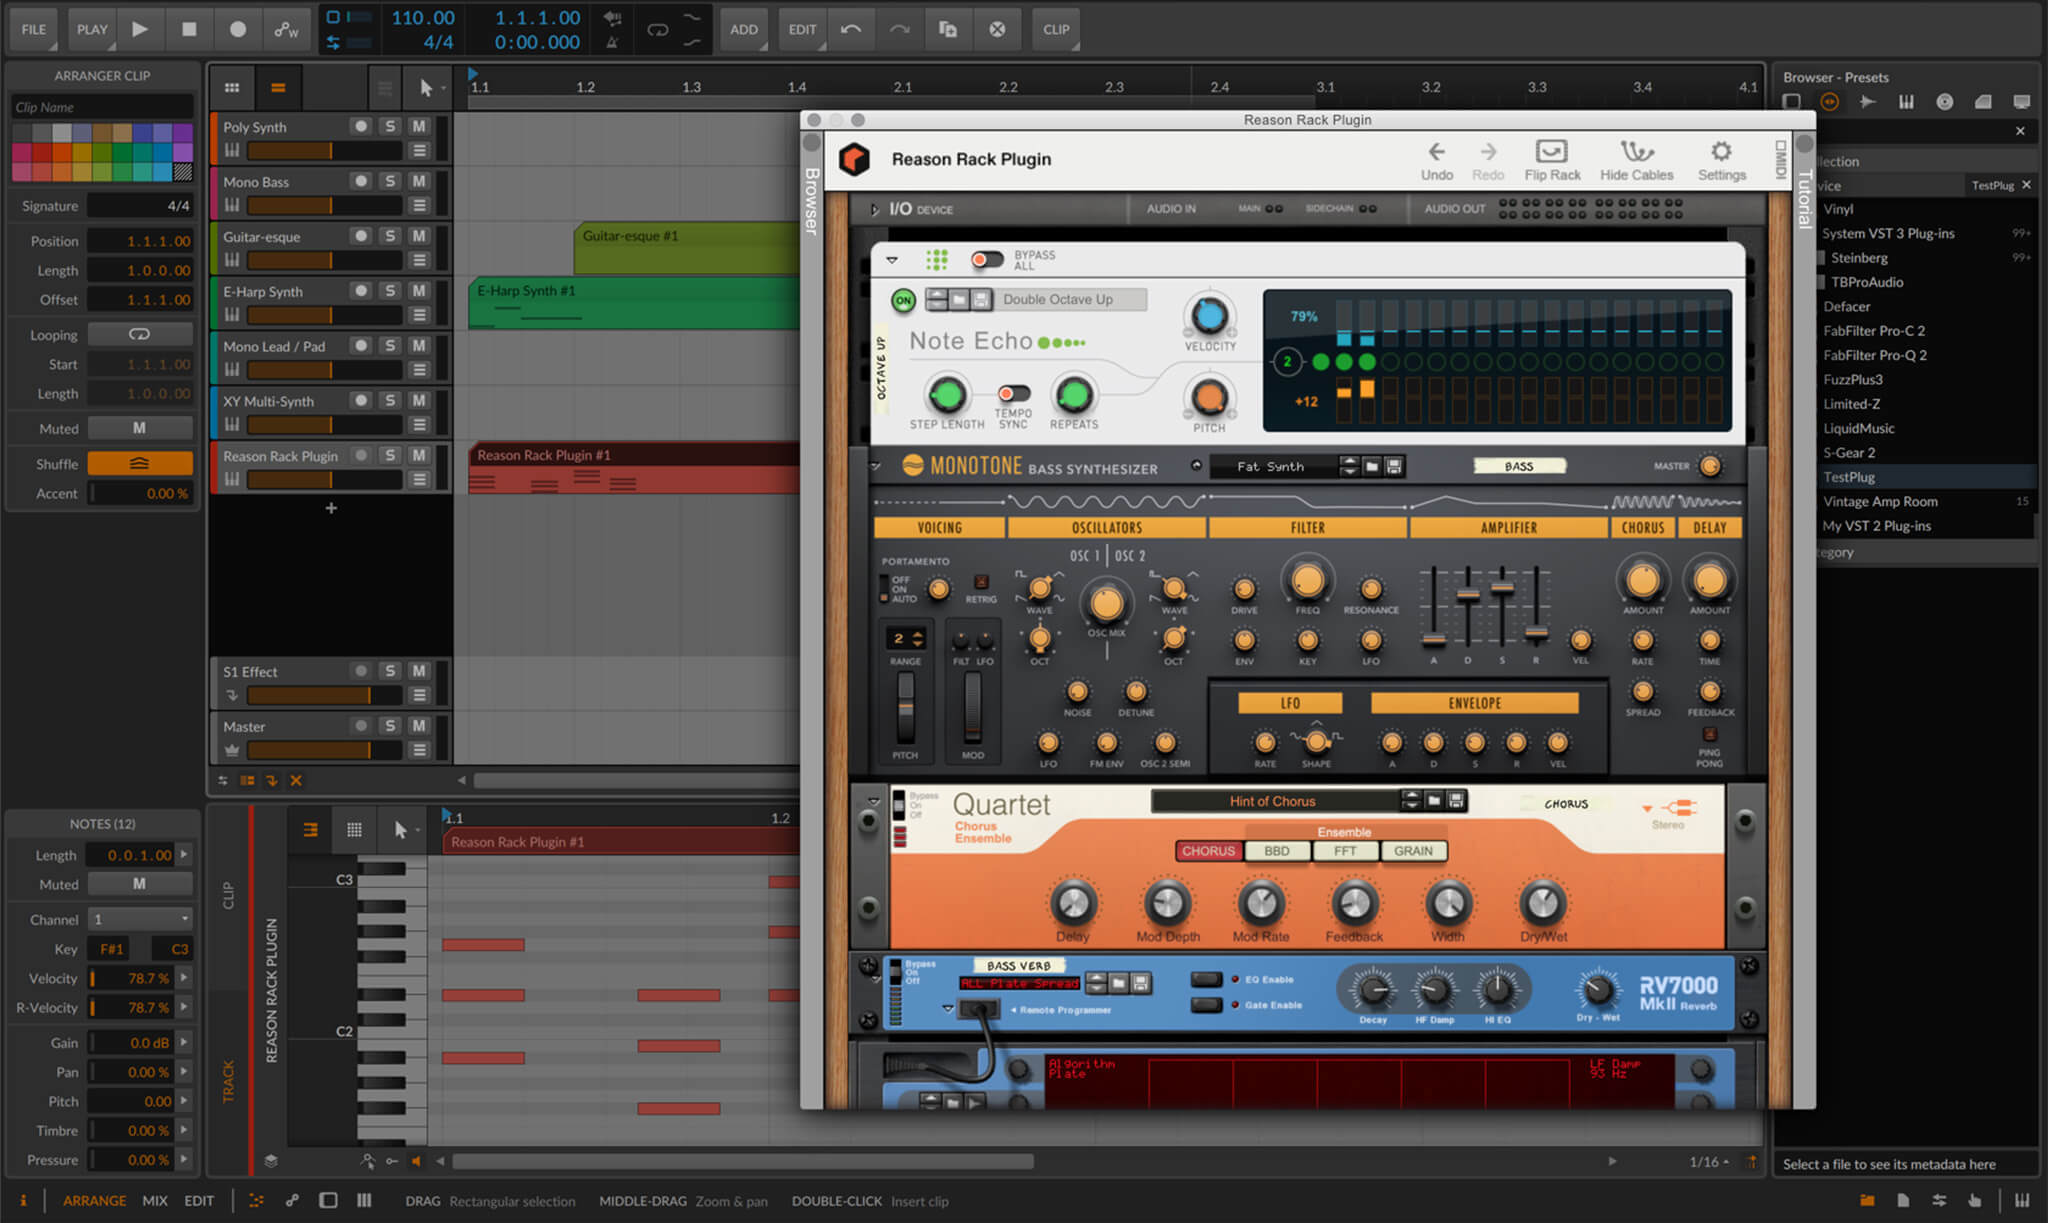 Reason Rack Plugin for Bitwig